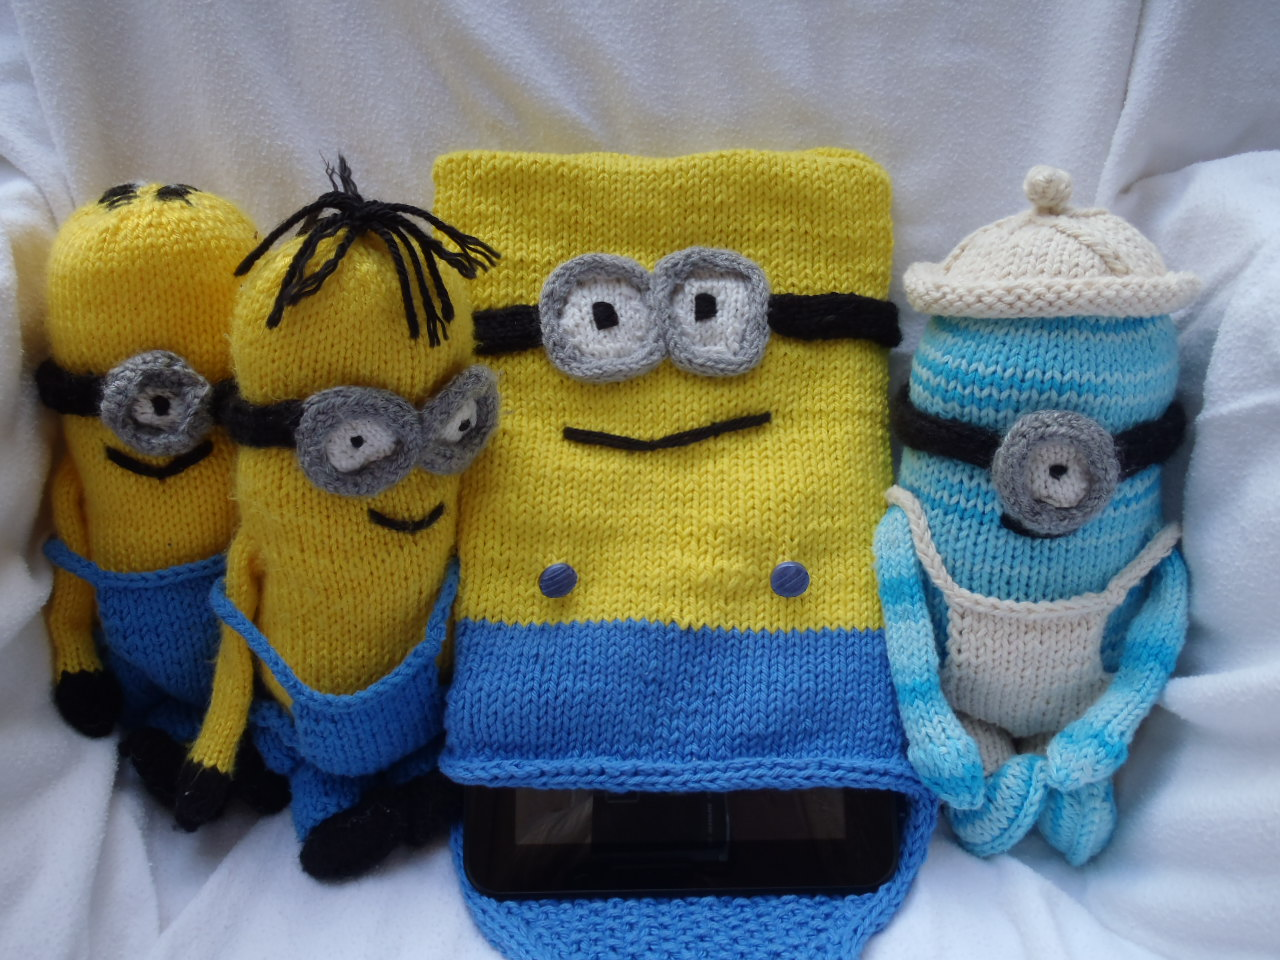 Knitting Patterns Minions : Stanas Critters Etc.: Knitting Pattern for Minions Tablet or I-pad cover